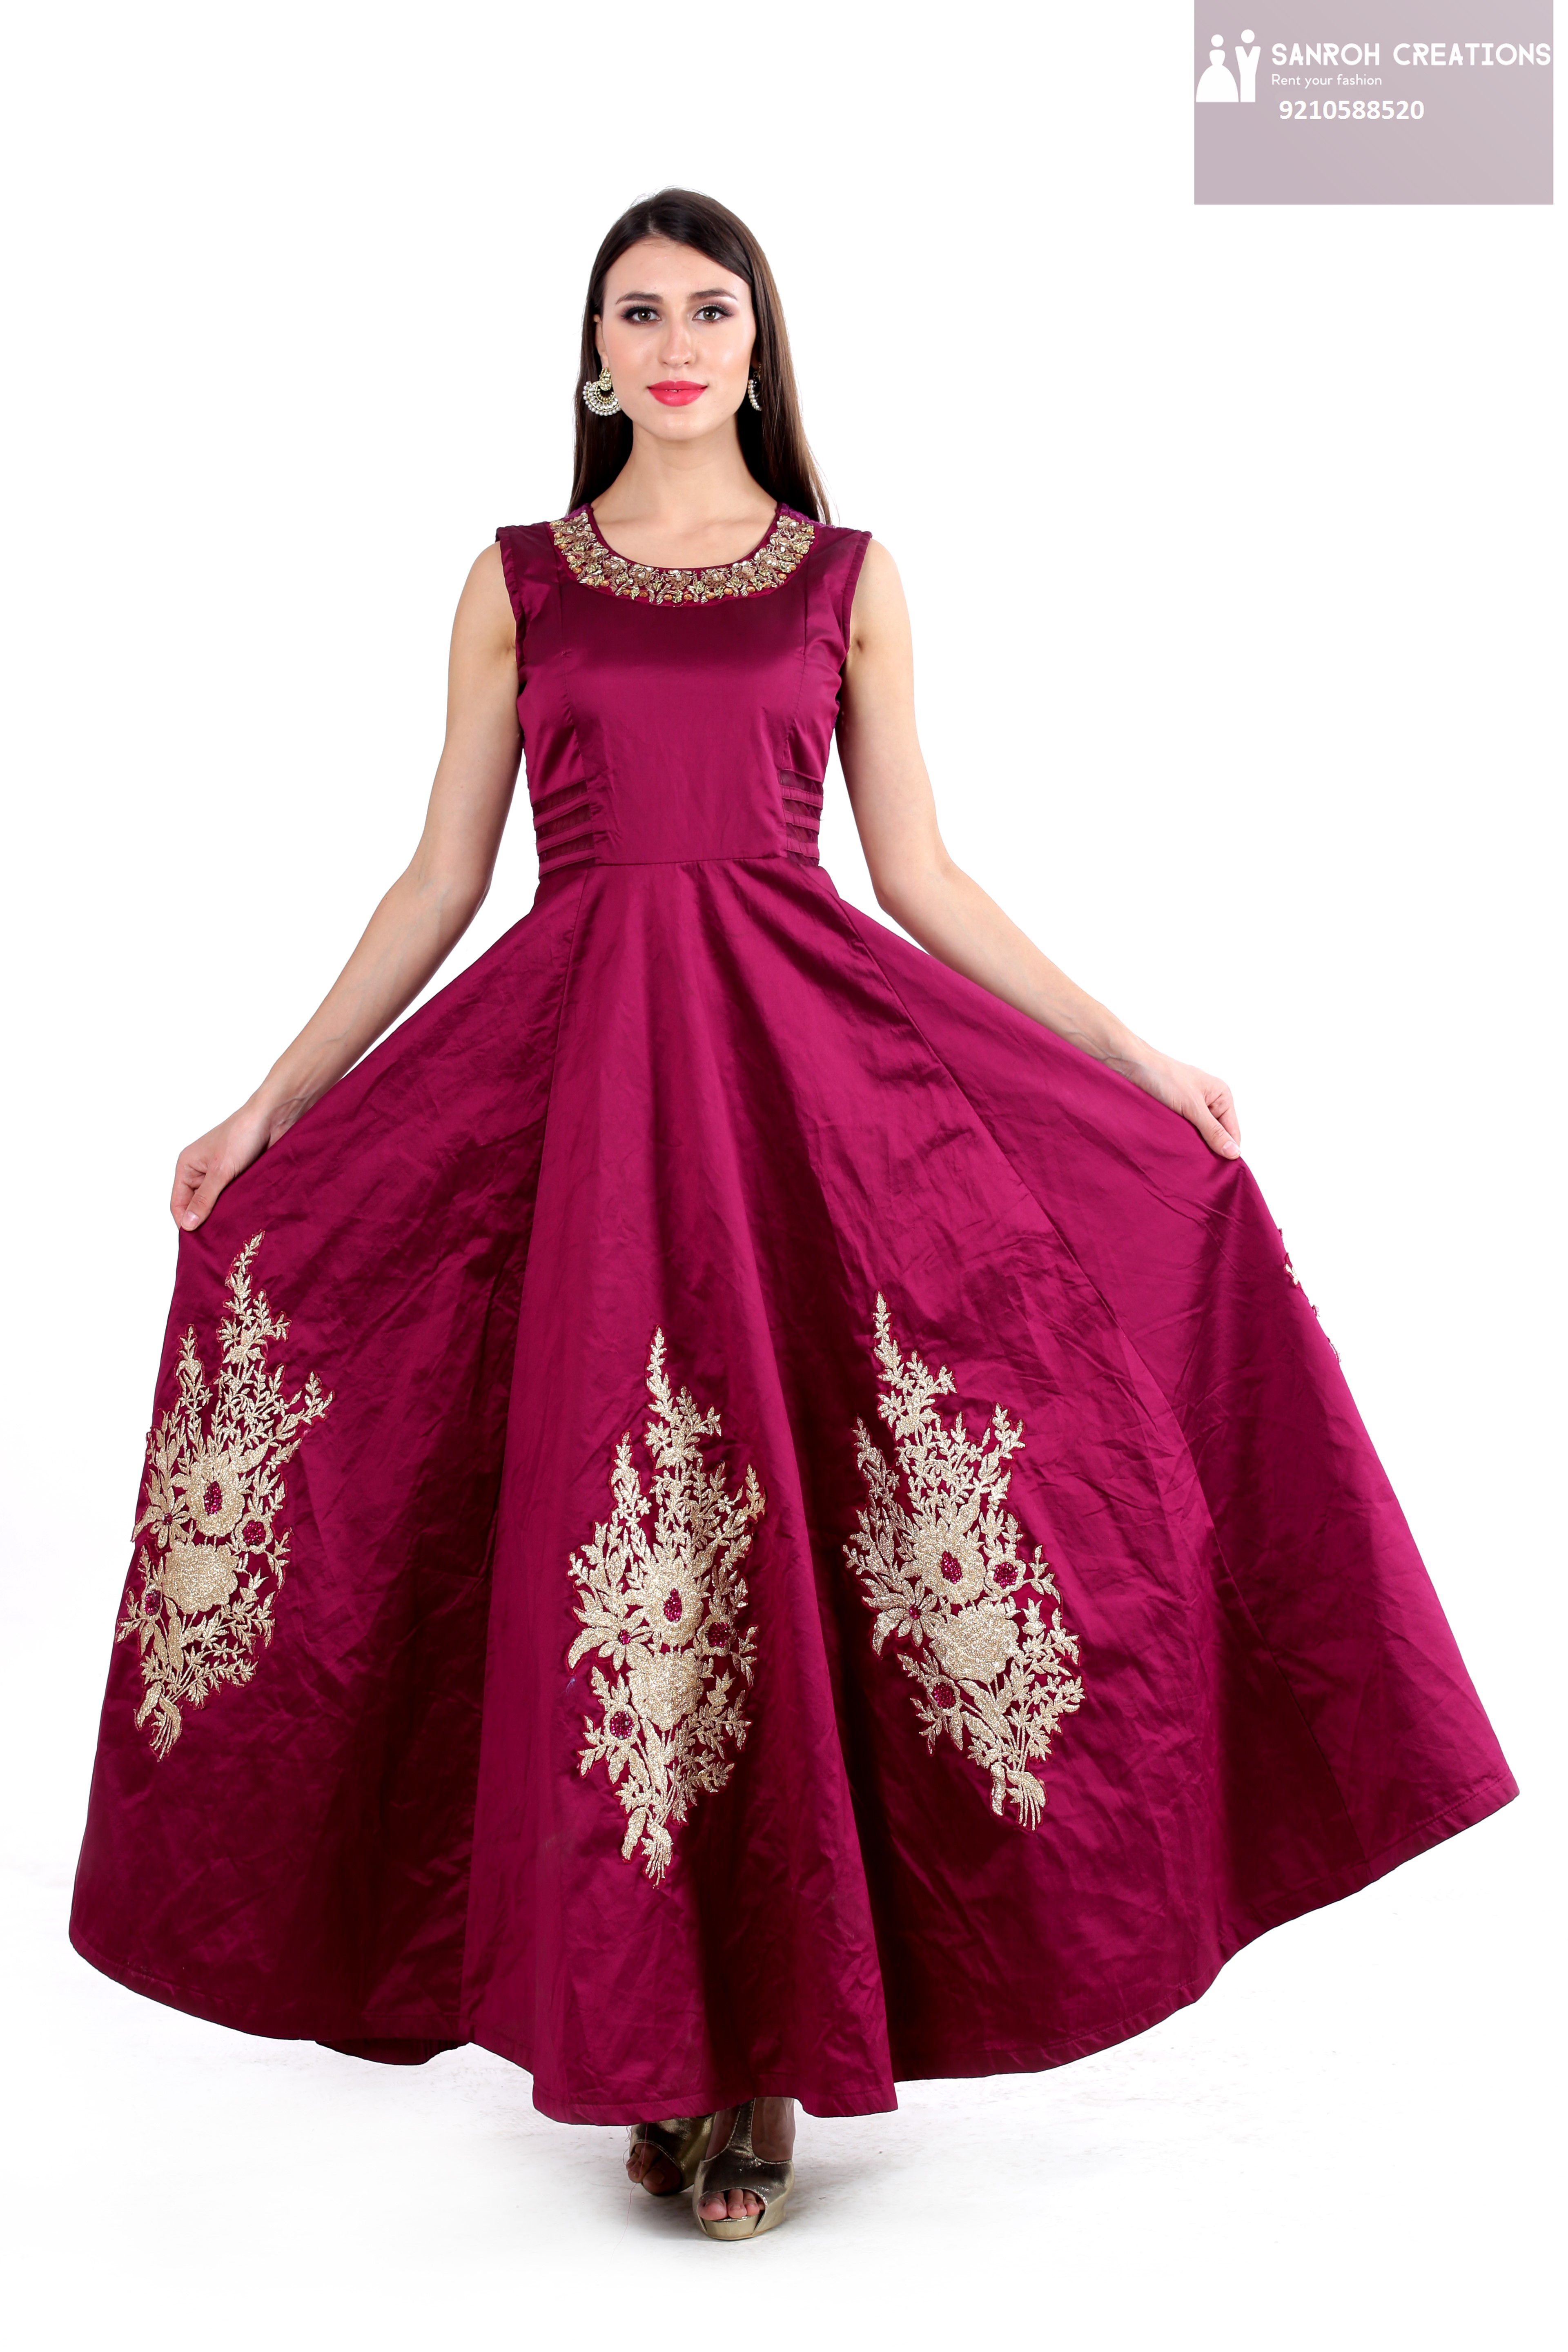 dresses for girls on rent in Maulsari